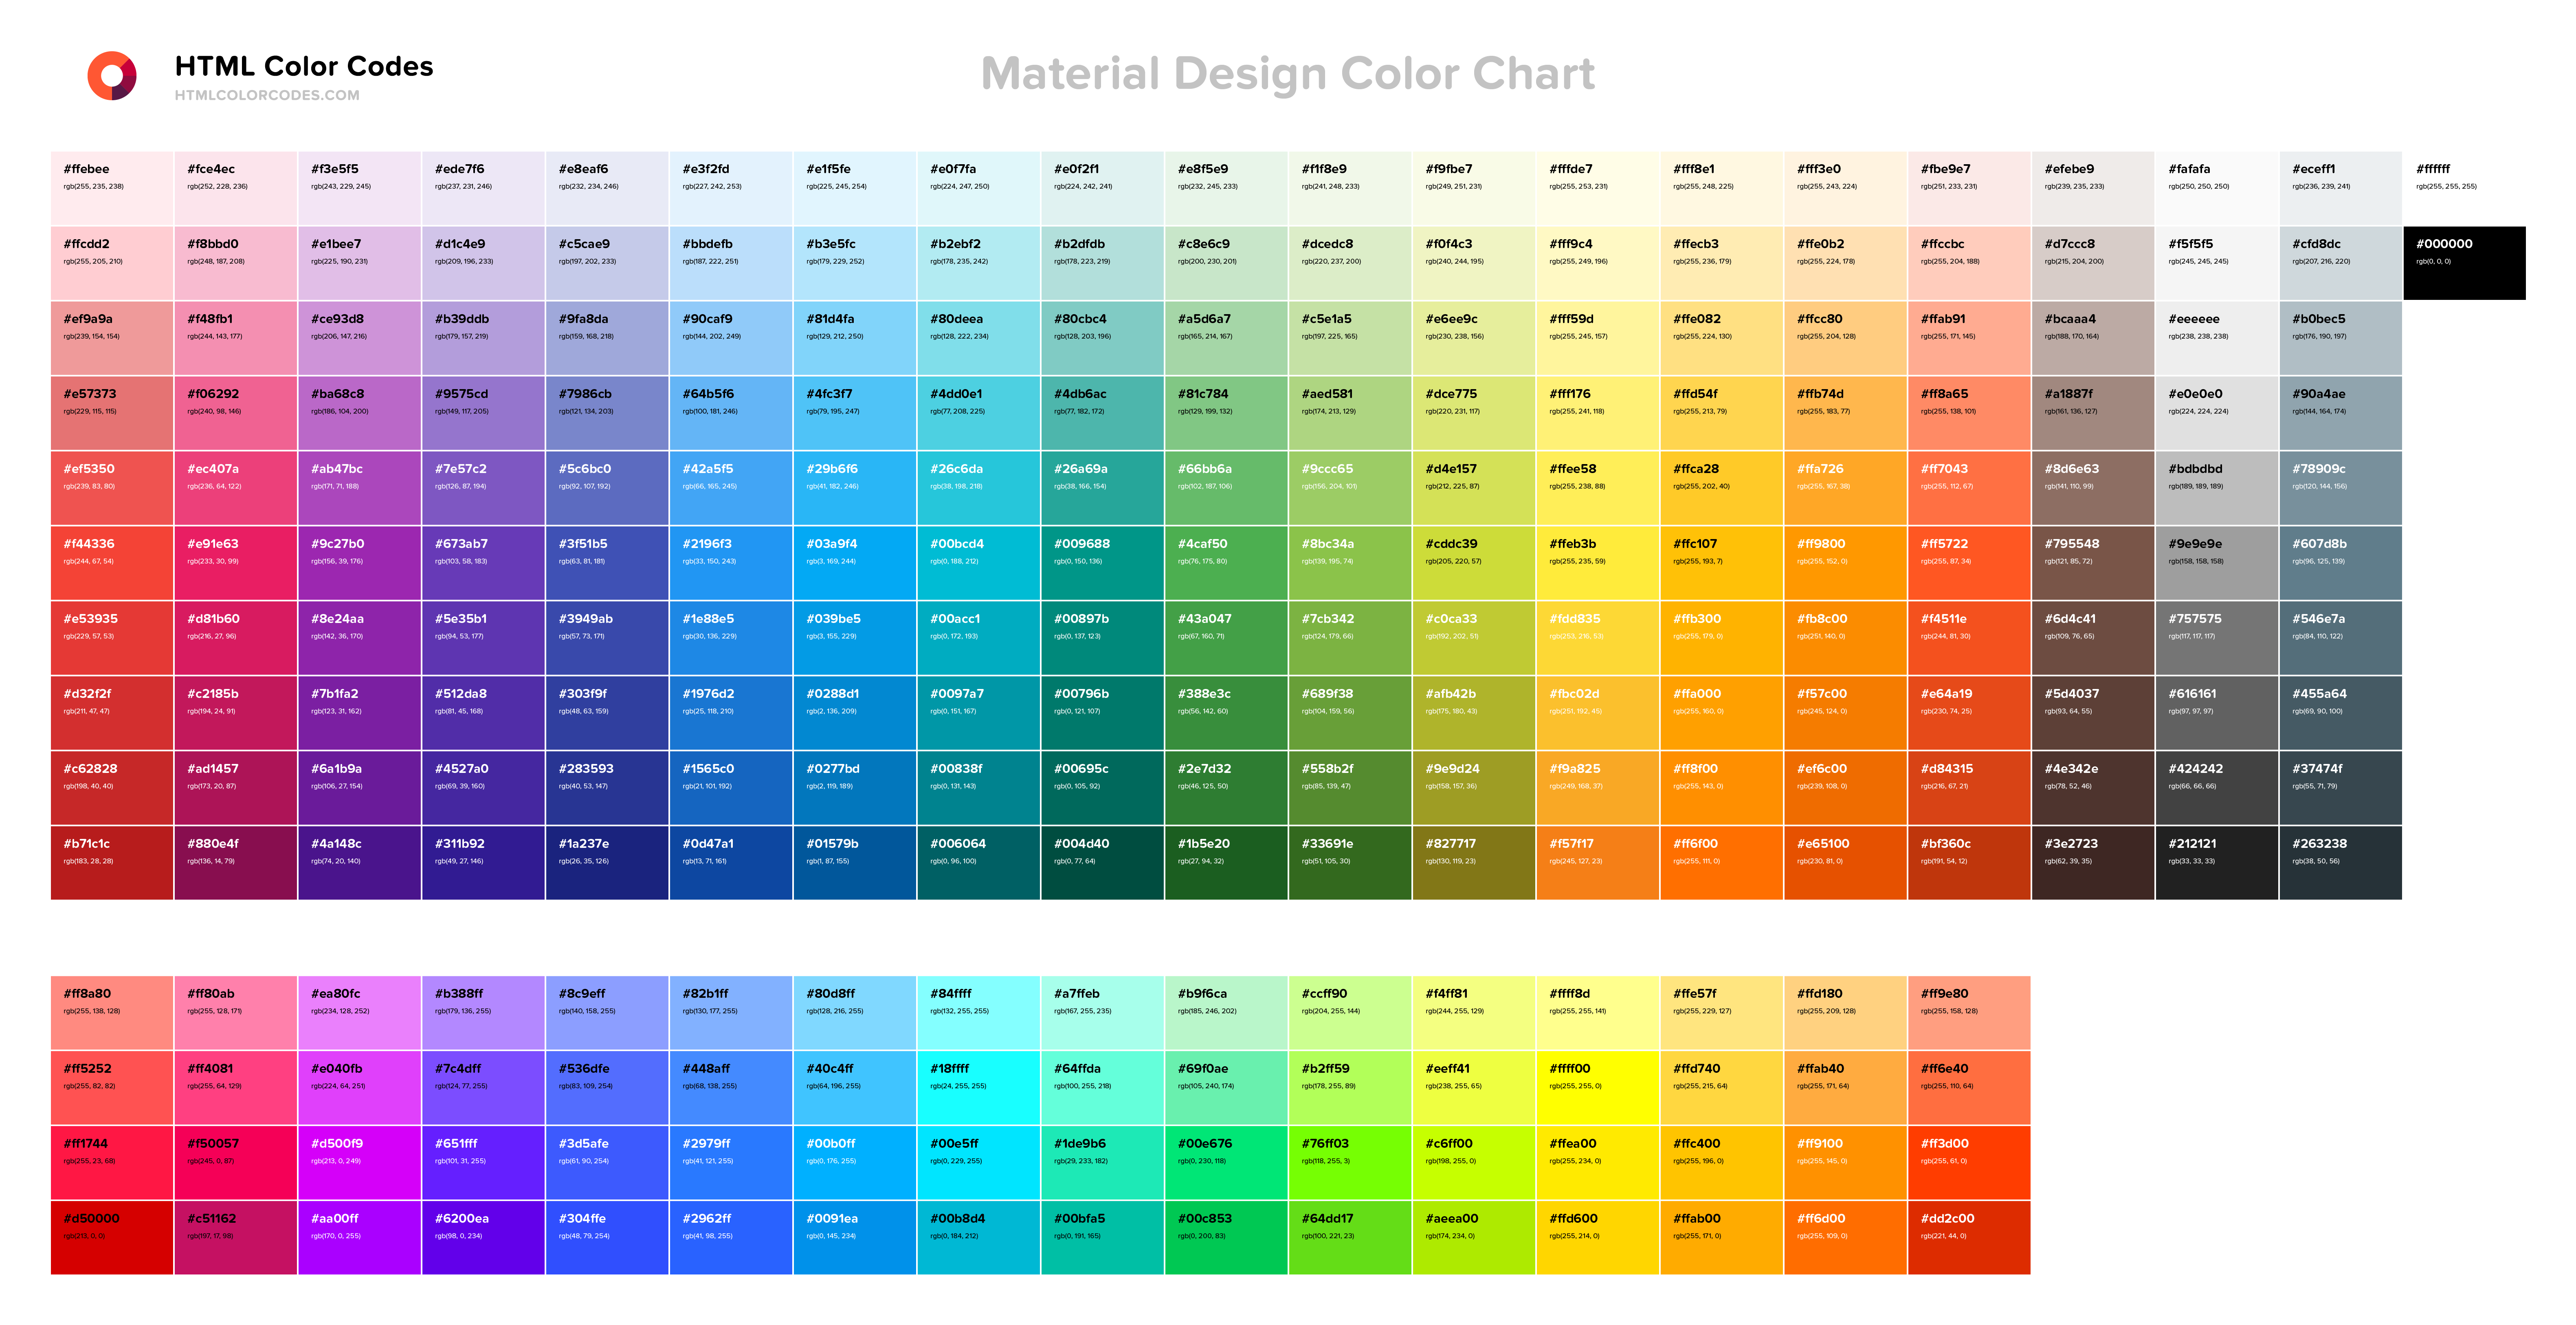 material-design-color-chart.png